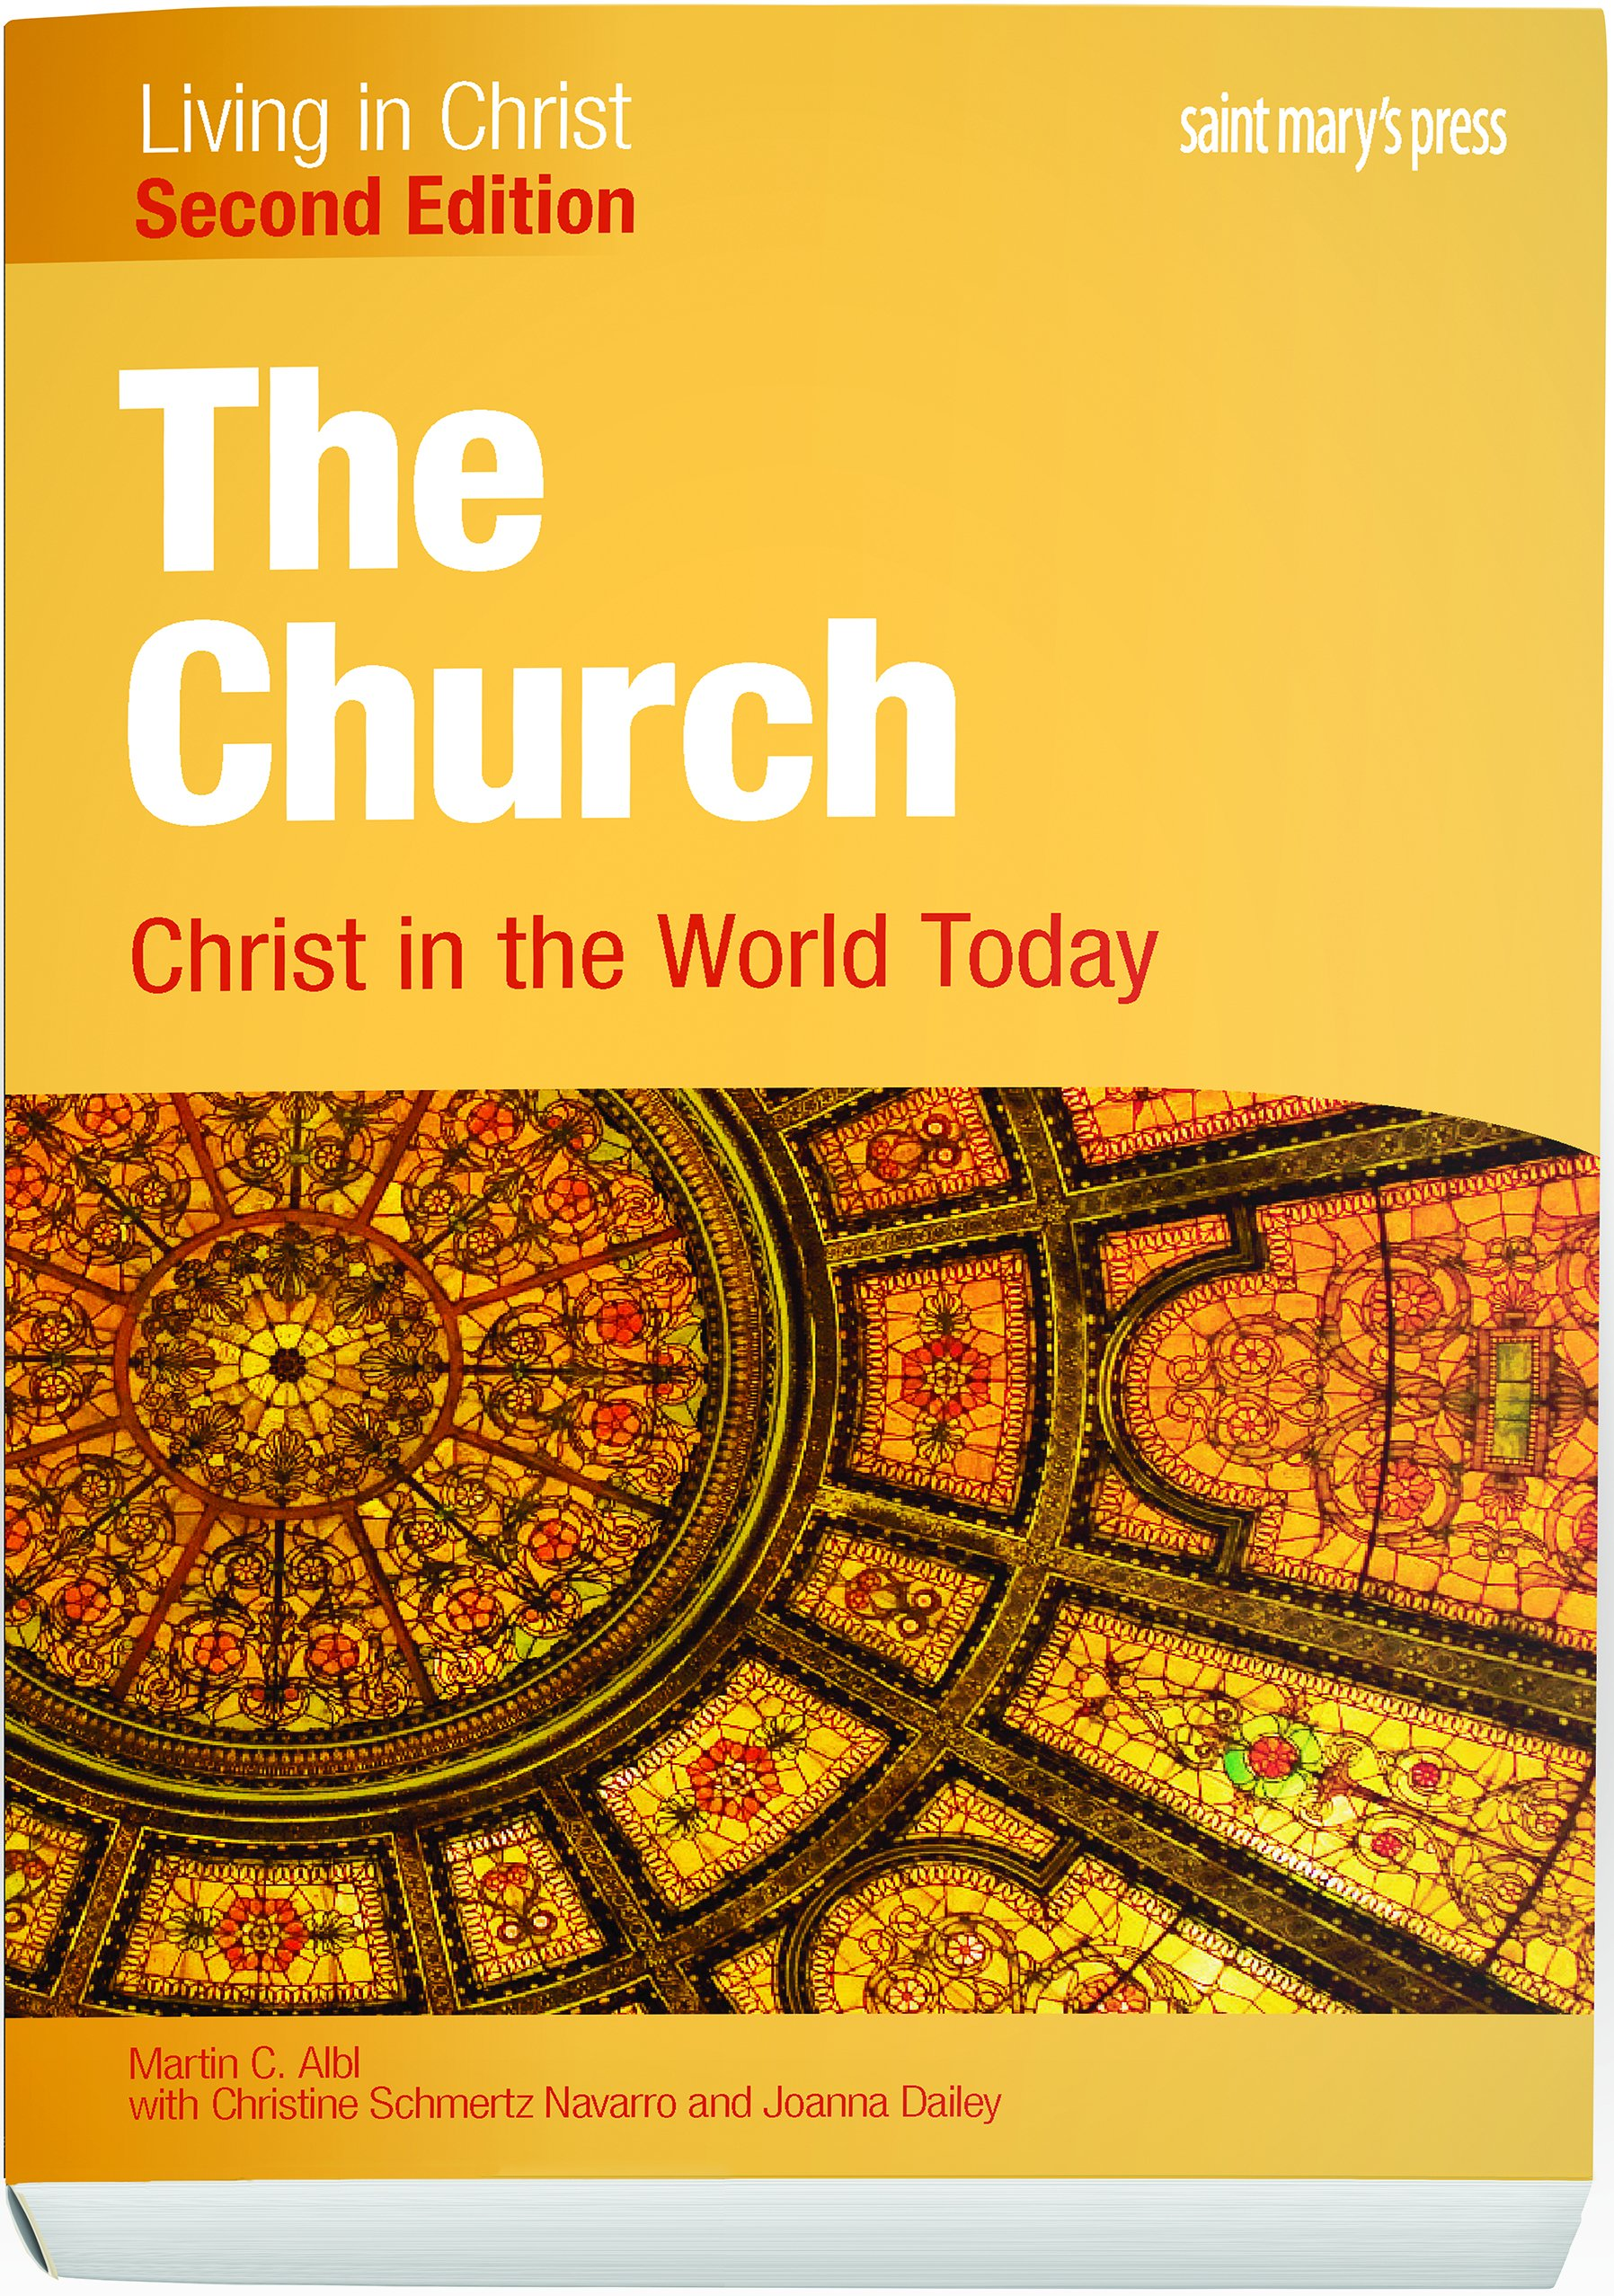 The church christ in the world today second edition student the church christ in the world today second edition student text living in christ martin c albl 9781599824352 amazon books fandeluxe Choice Image